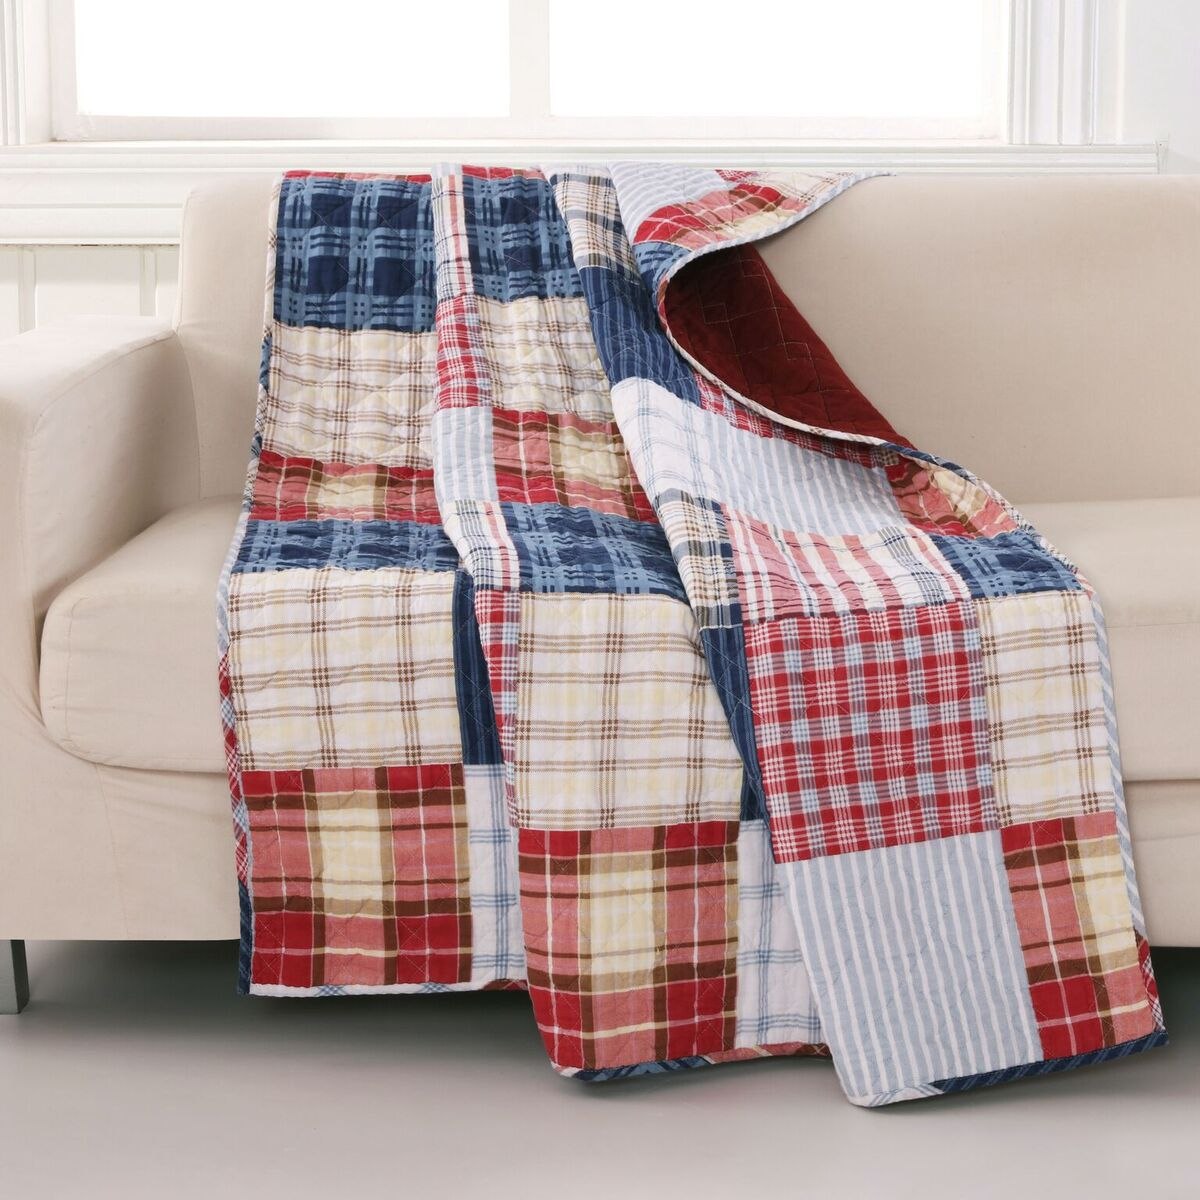 Hampton Multi Accessory Throw